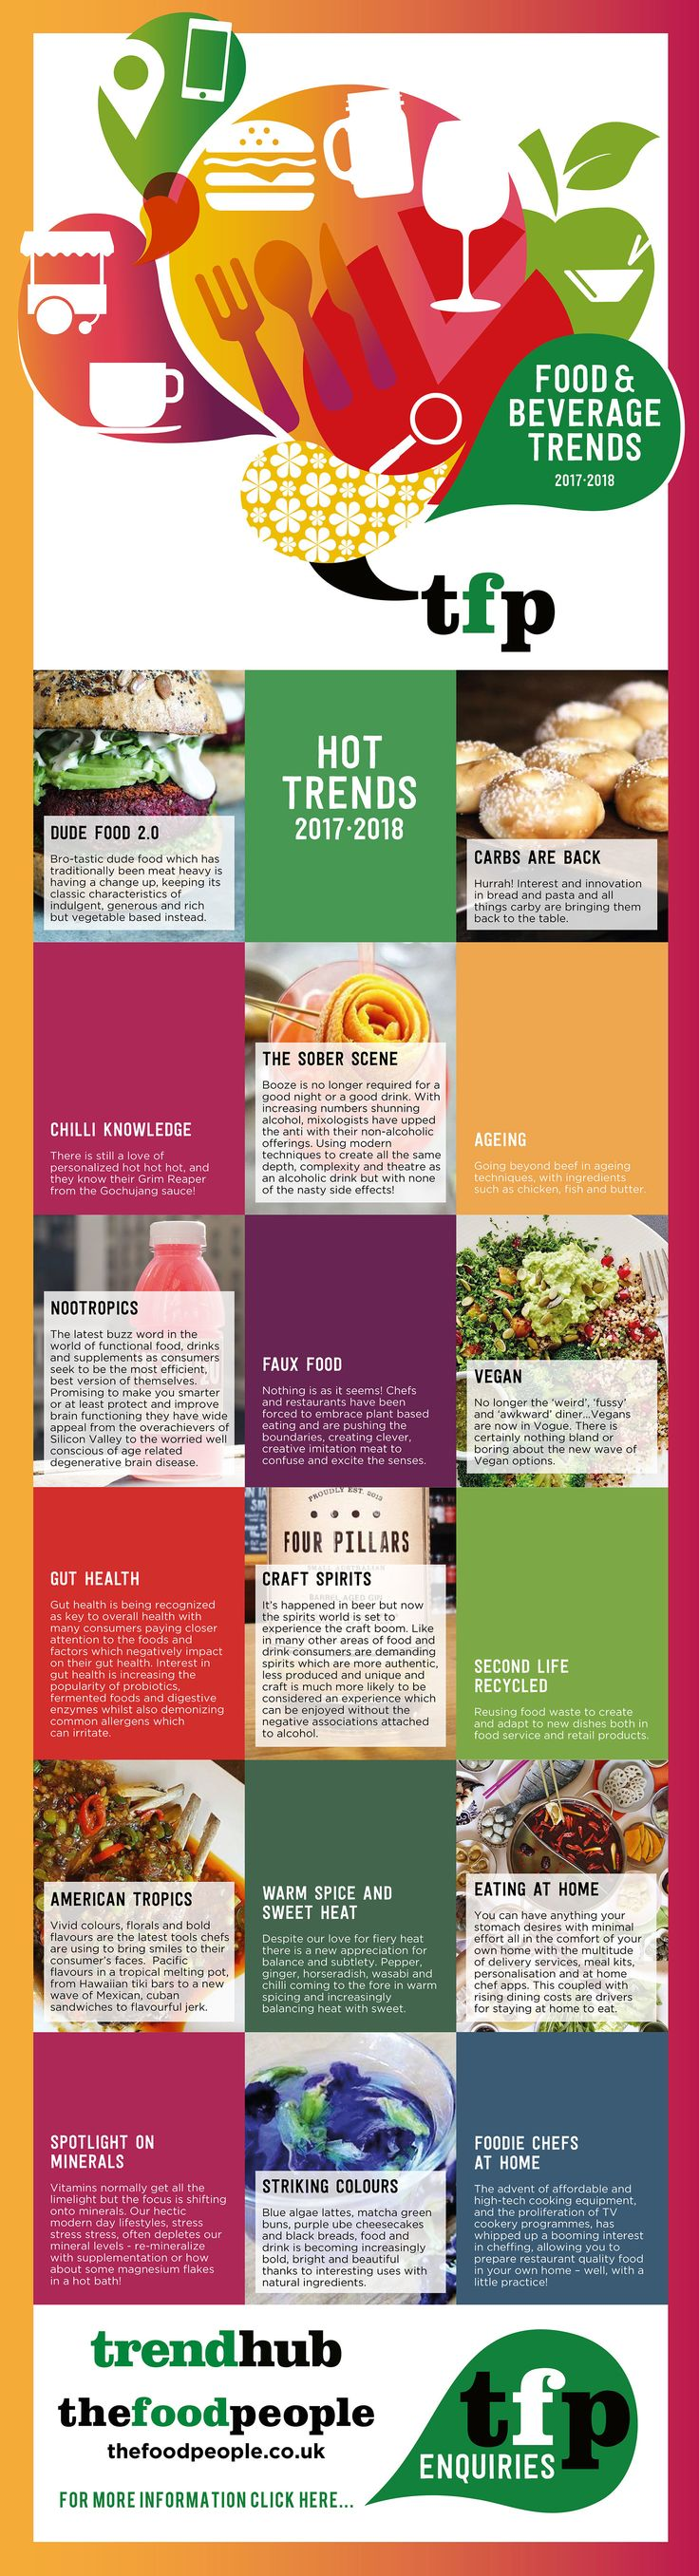 Infographic of The Hot Food and Beverage Trends 2017